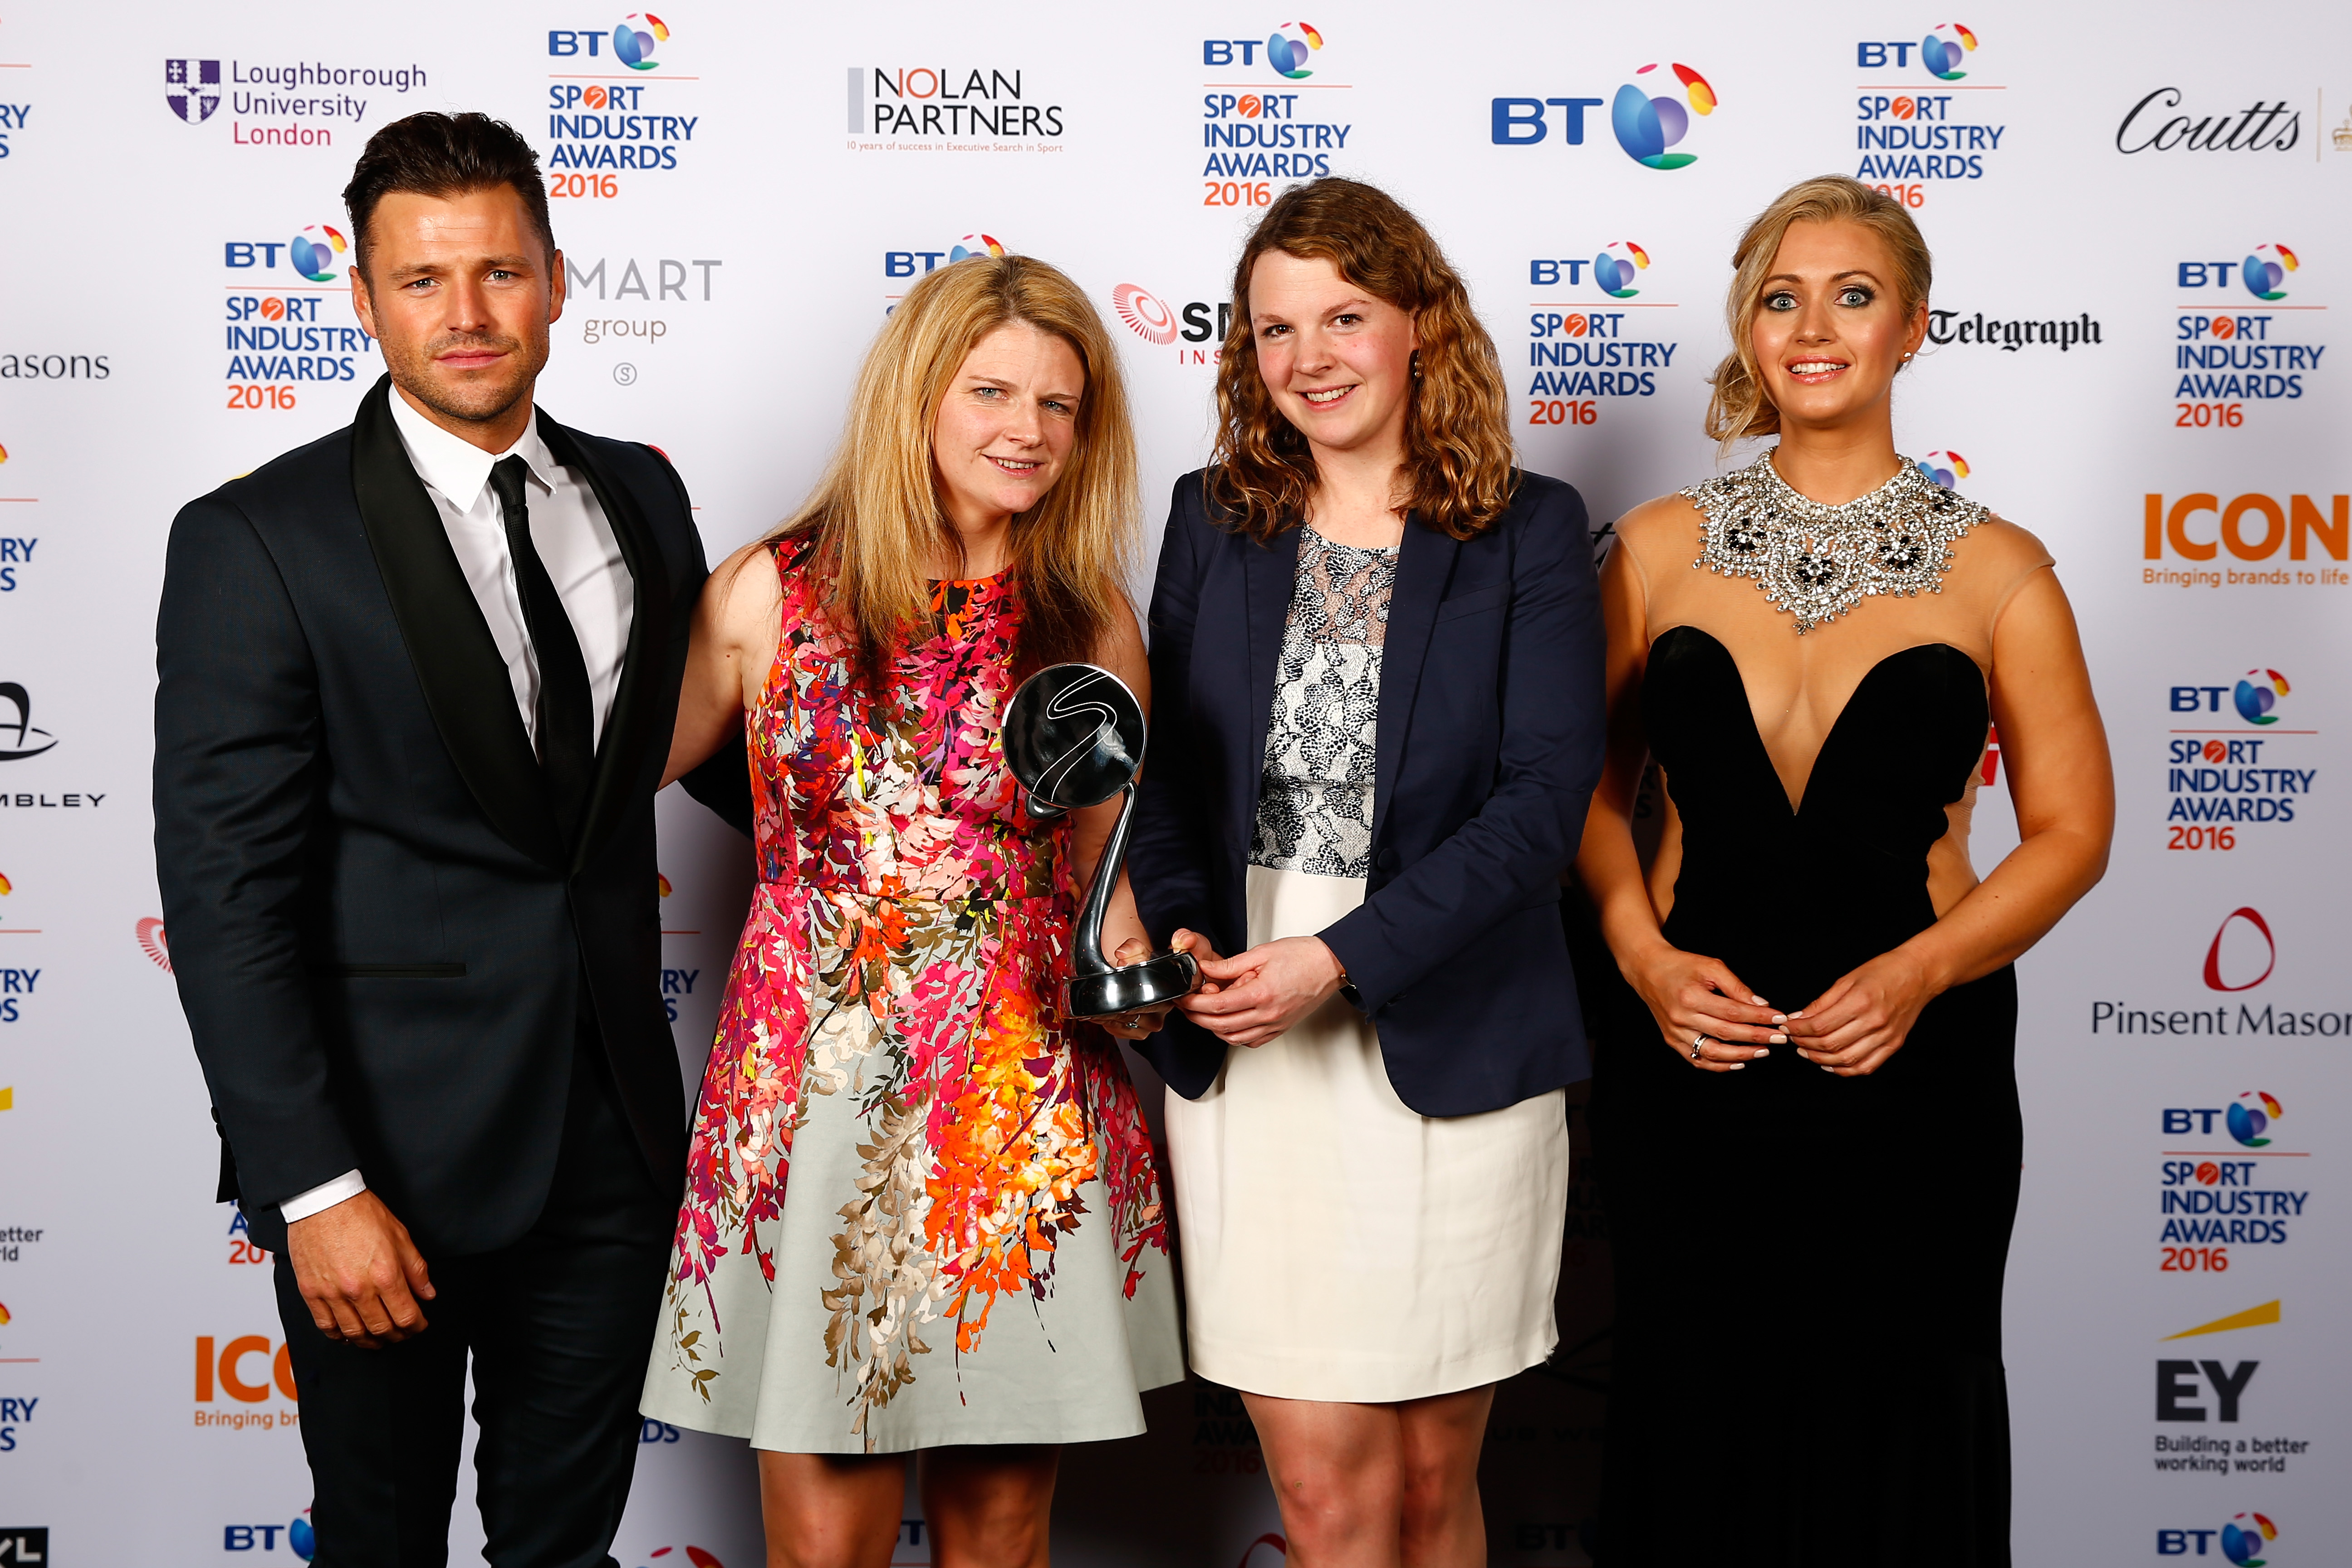 Mark Wright and Hayley McQueen present the Best Use of Social Media award to AELTC Wimbledon 2015: Sharing the Moments that Matter